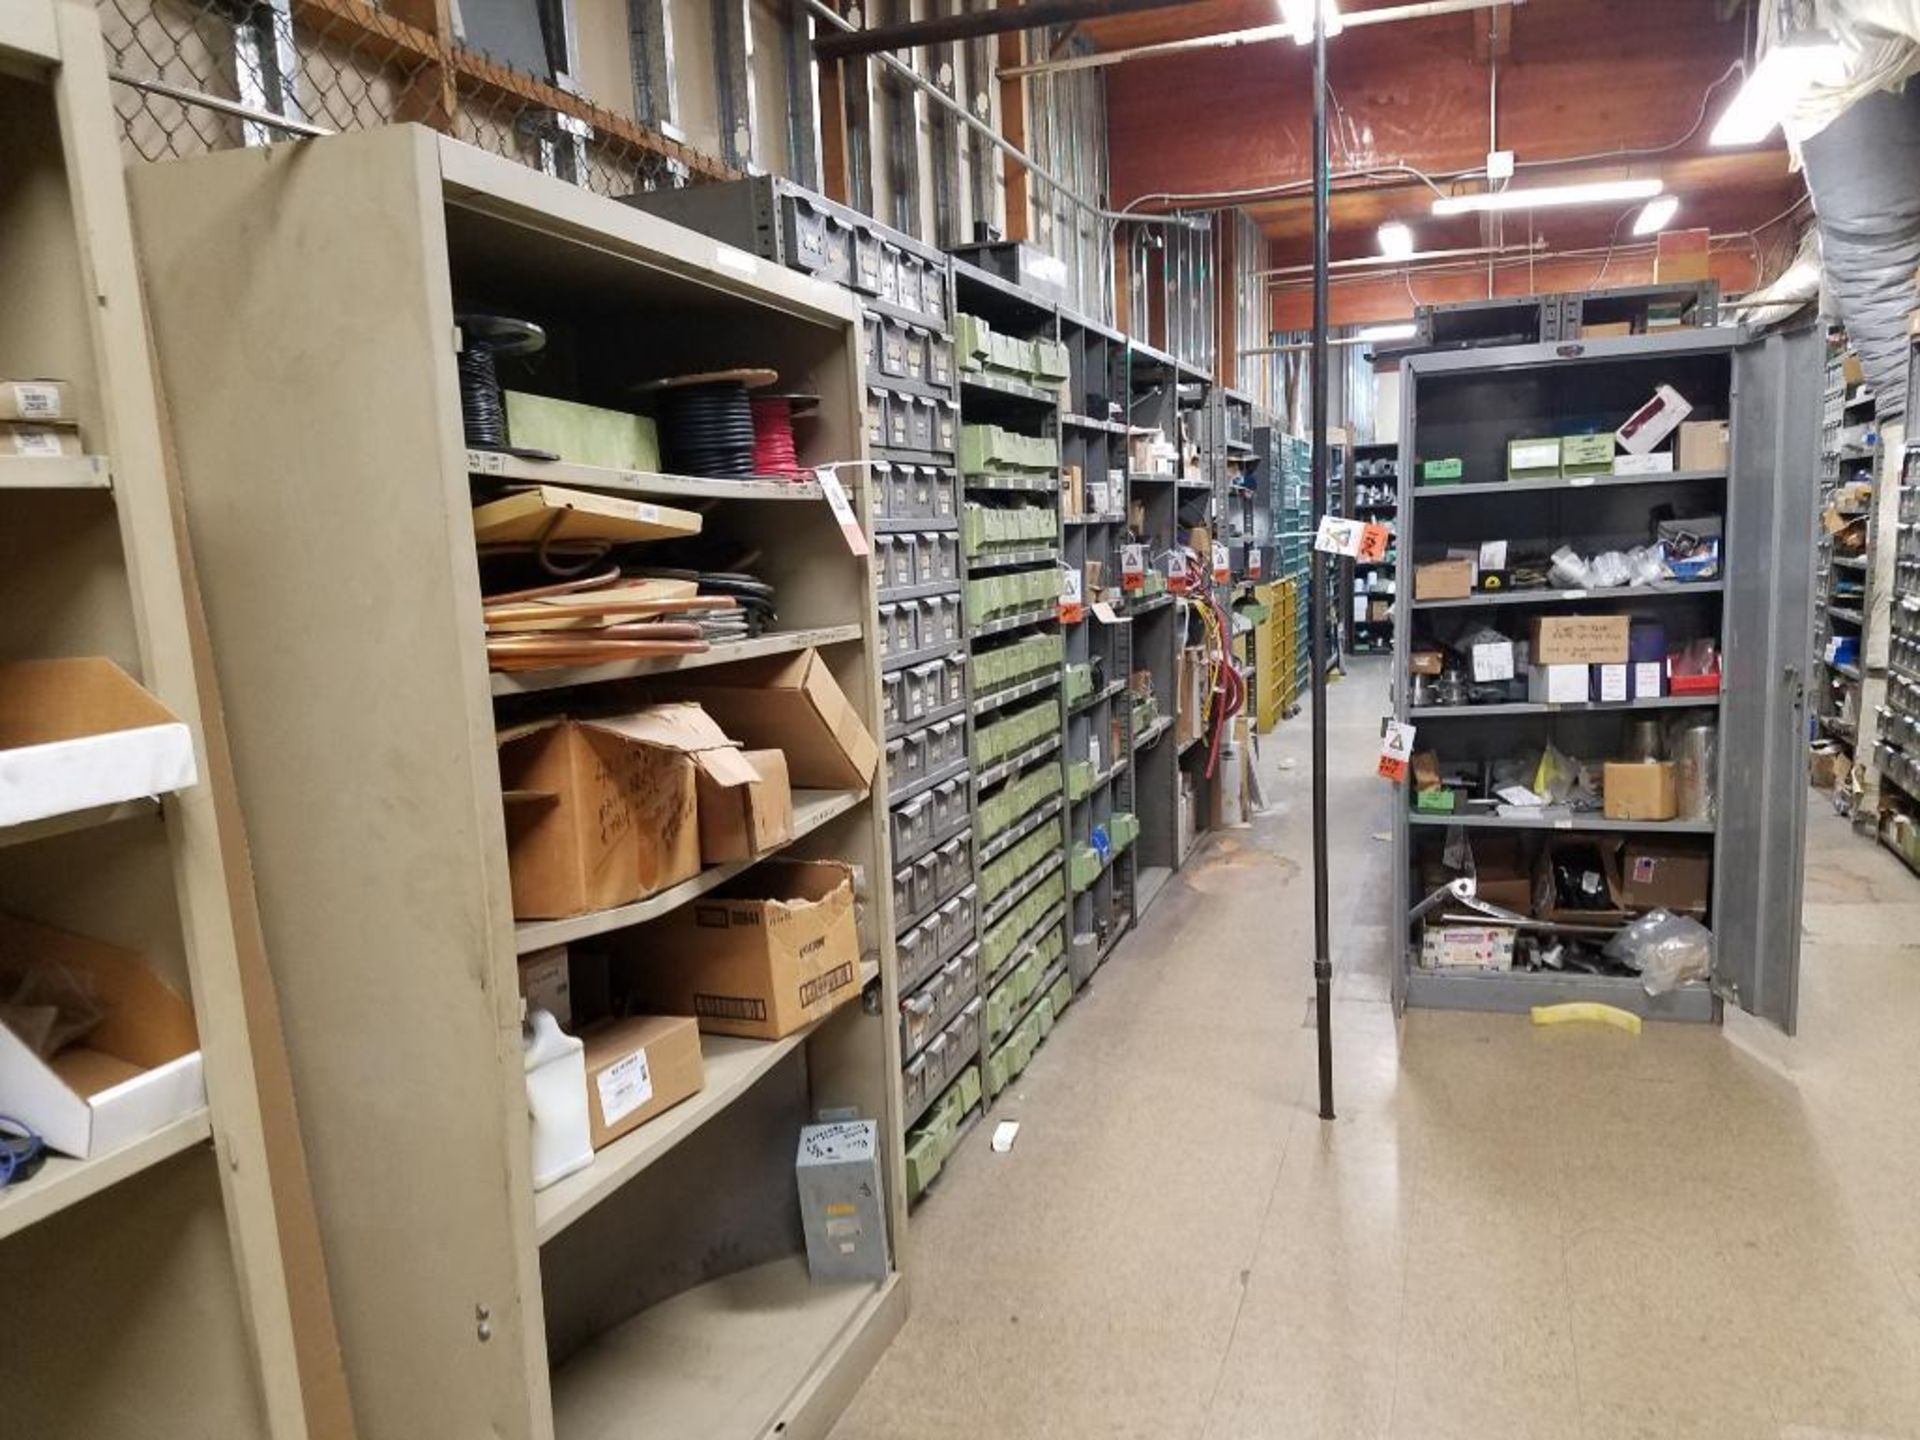 all shelving and storage units located in MRO room - Image 11 of 11